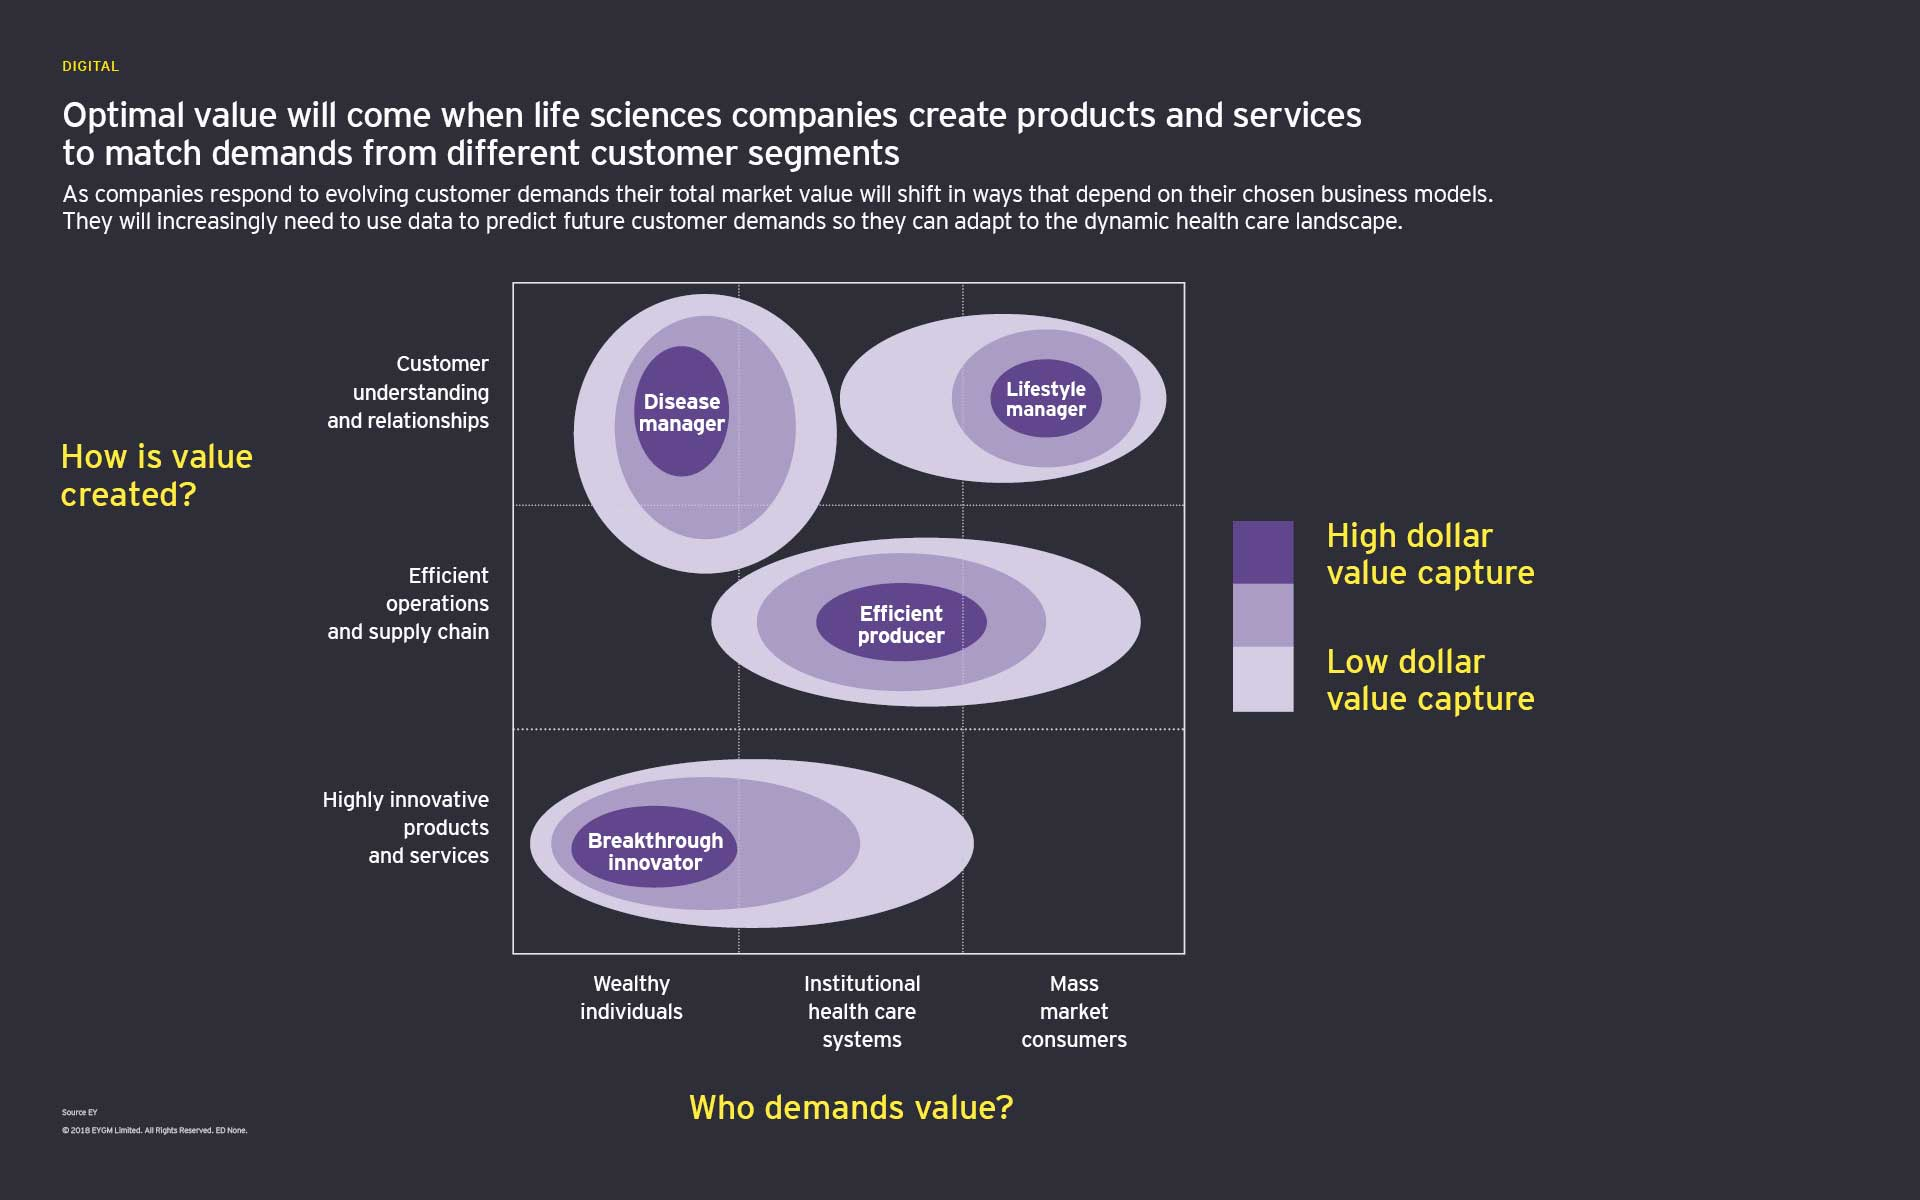 Optimal value will come when life sciences companies create products and services to match demands